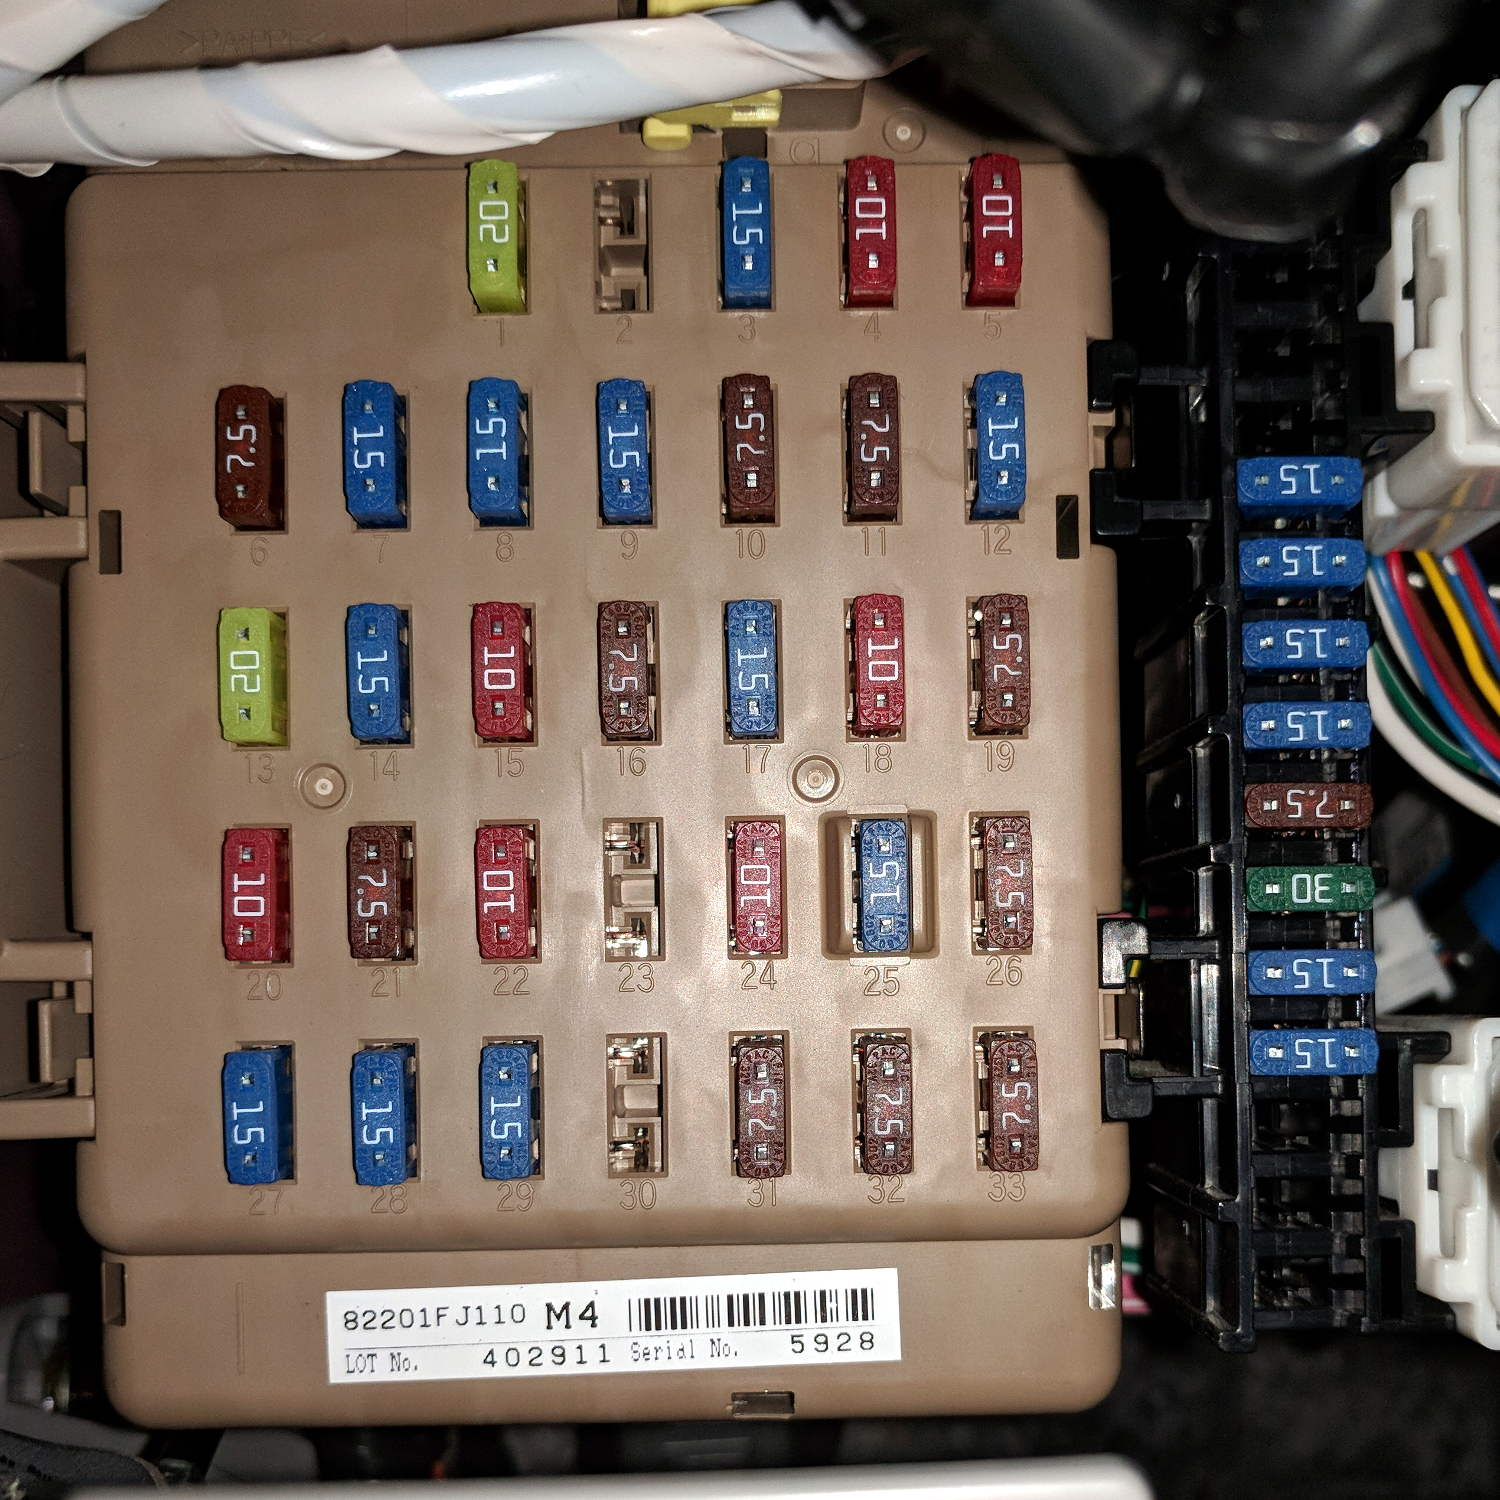 subaru forester fuse boxes the smell of molten projects in the morning rh softsolder com 2015 subaru forester fuse box 2015 subaru forester fuse box